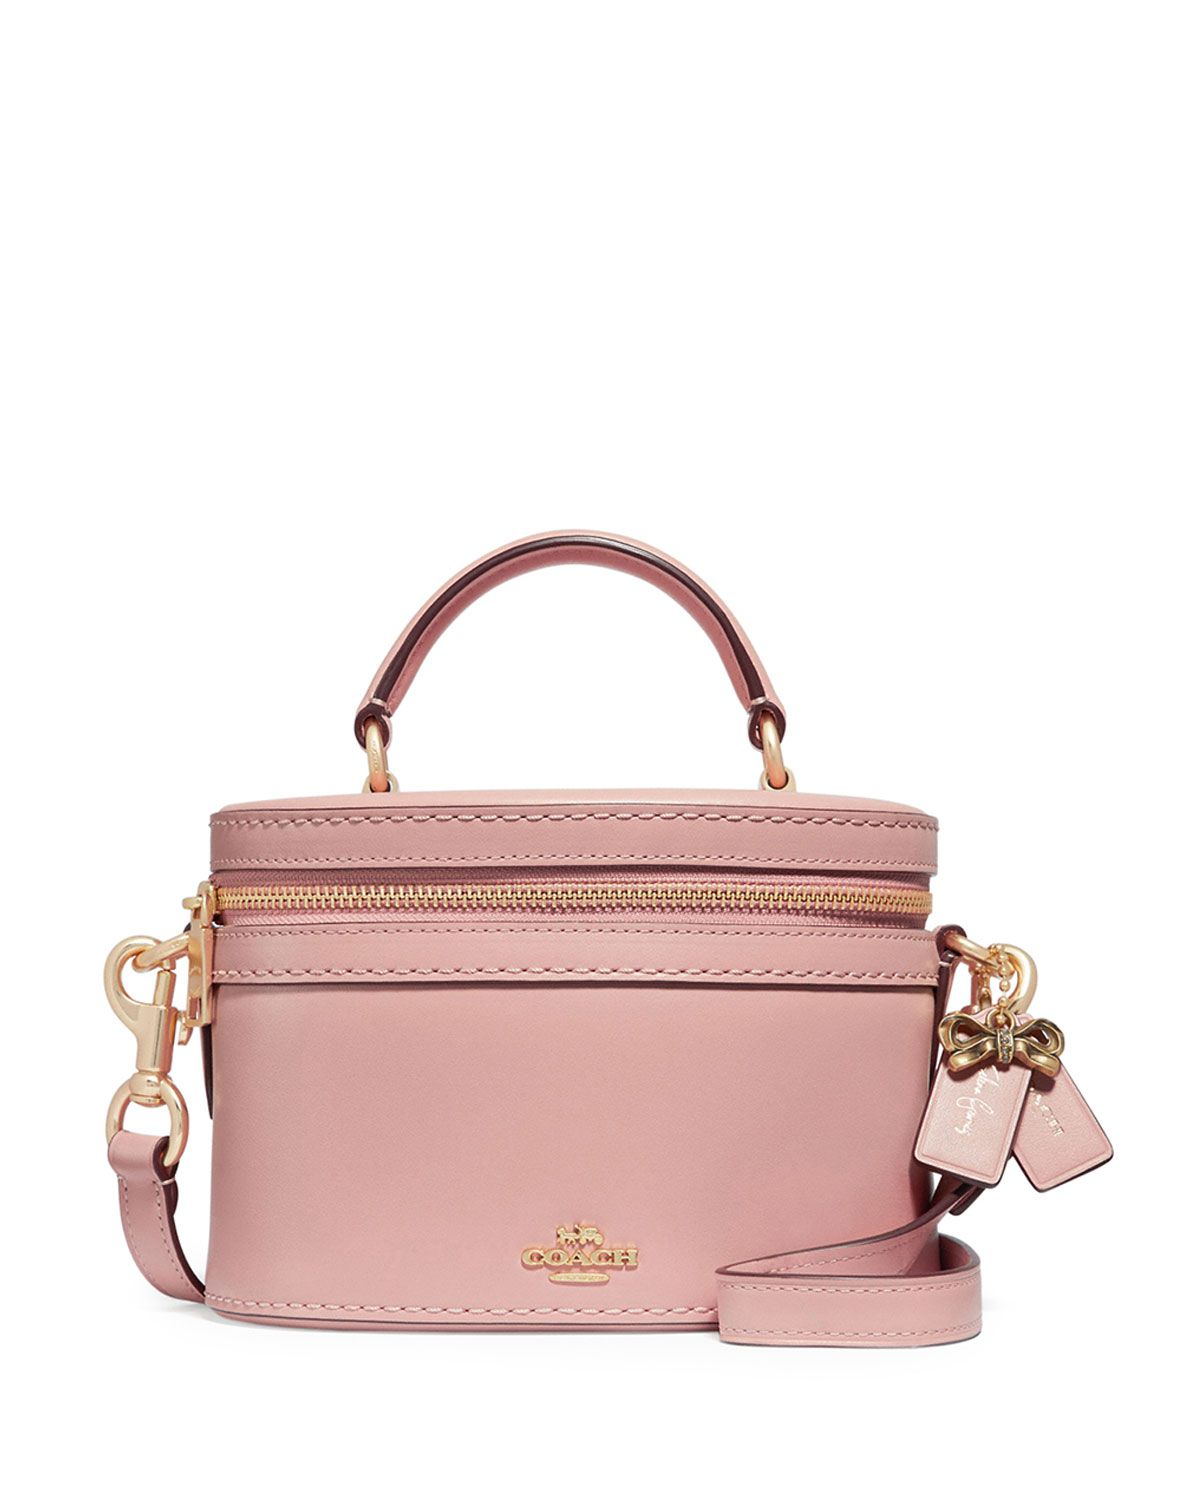 99ed4784a813 Coach x Selena Gomez Trail Crossbody Bag | Products in 2019 | Chanel ...